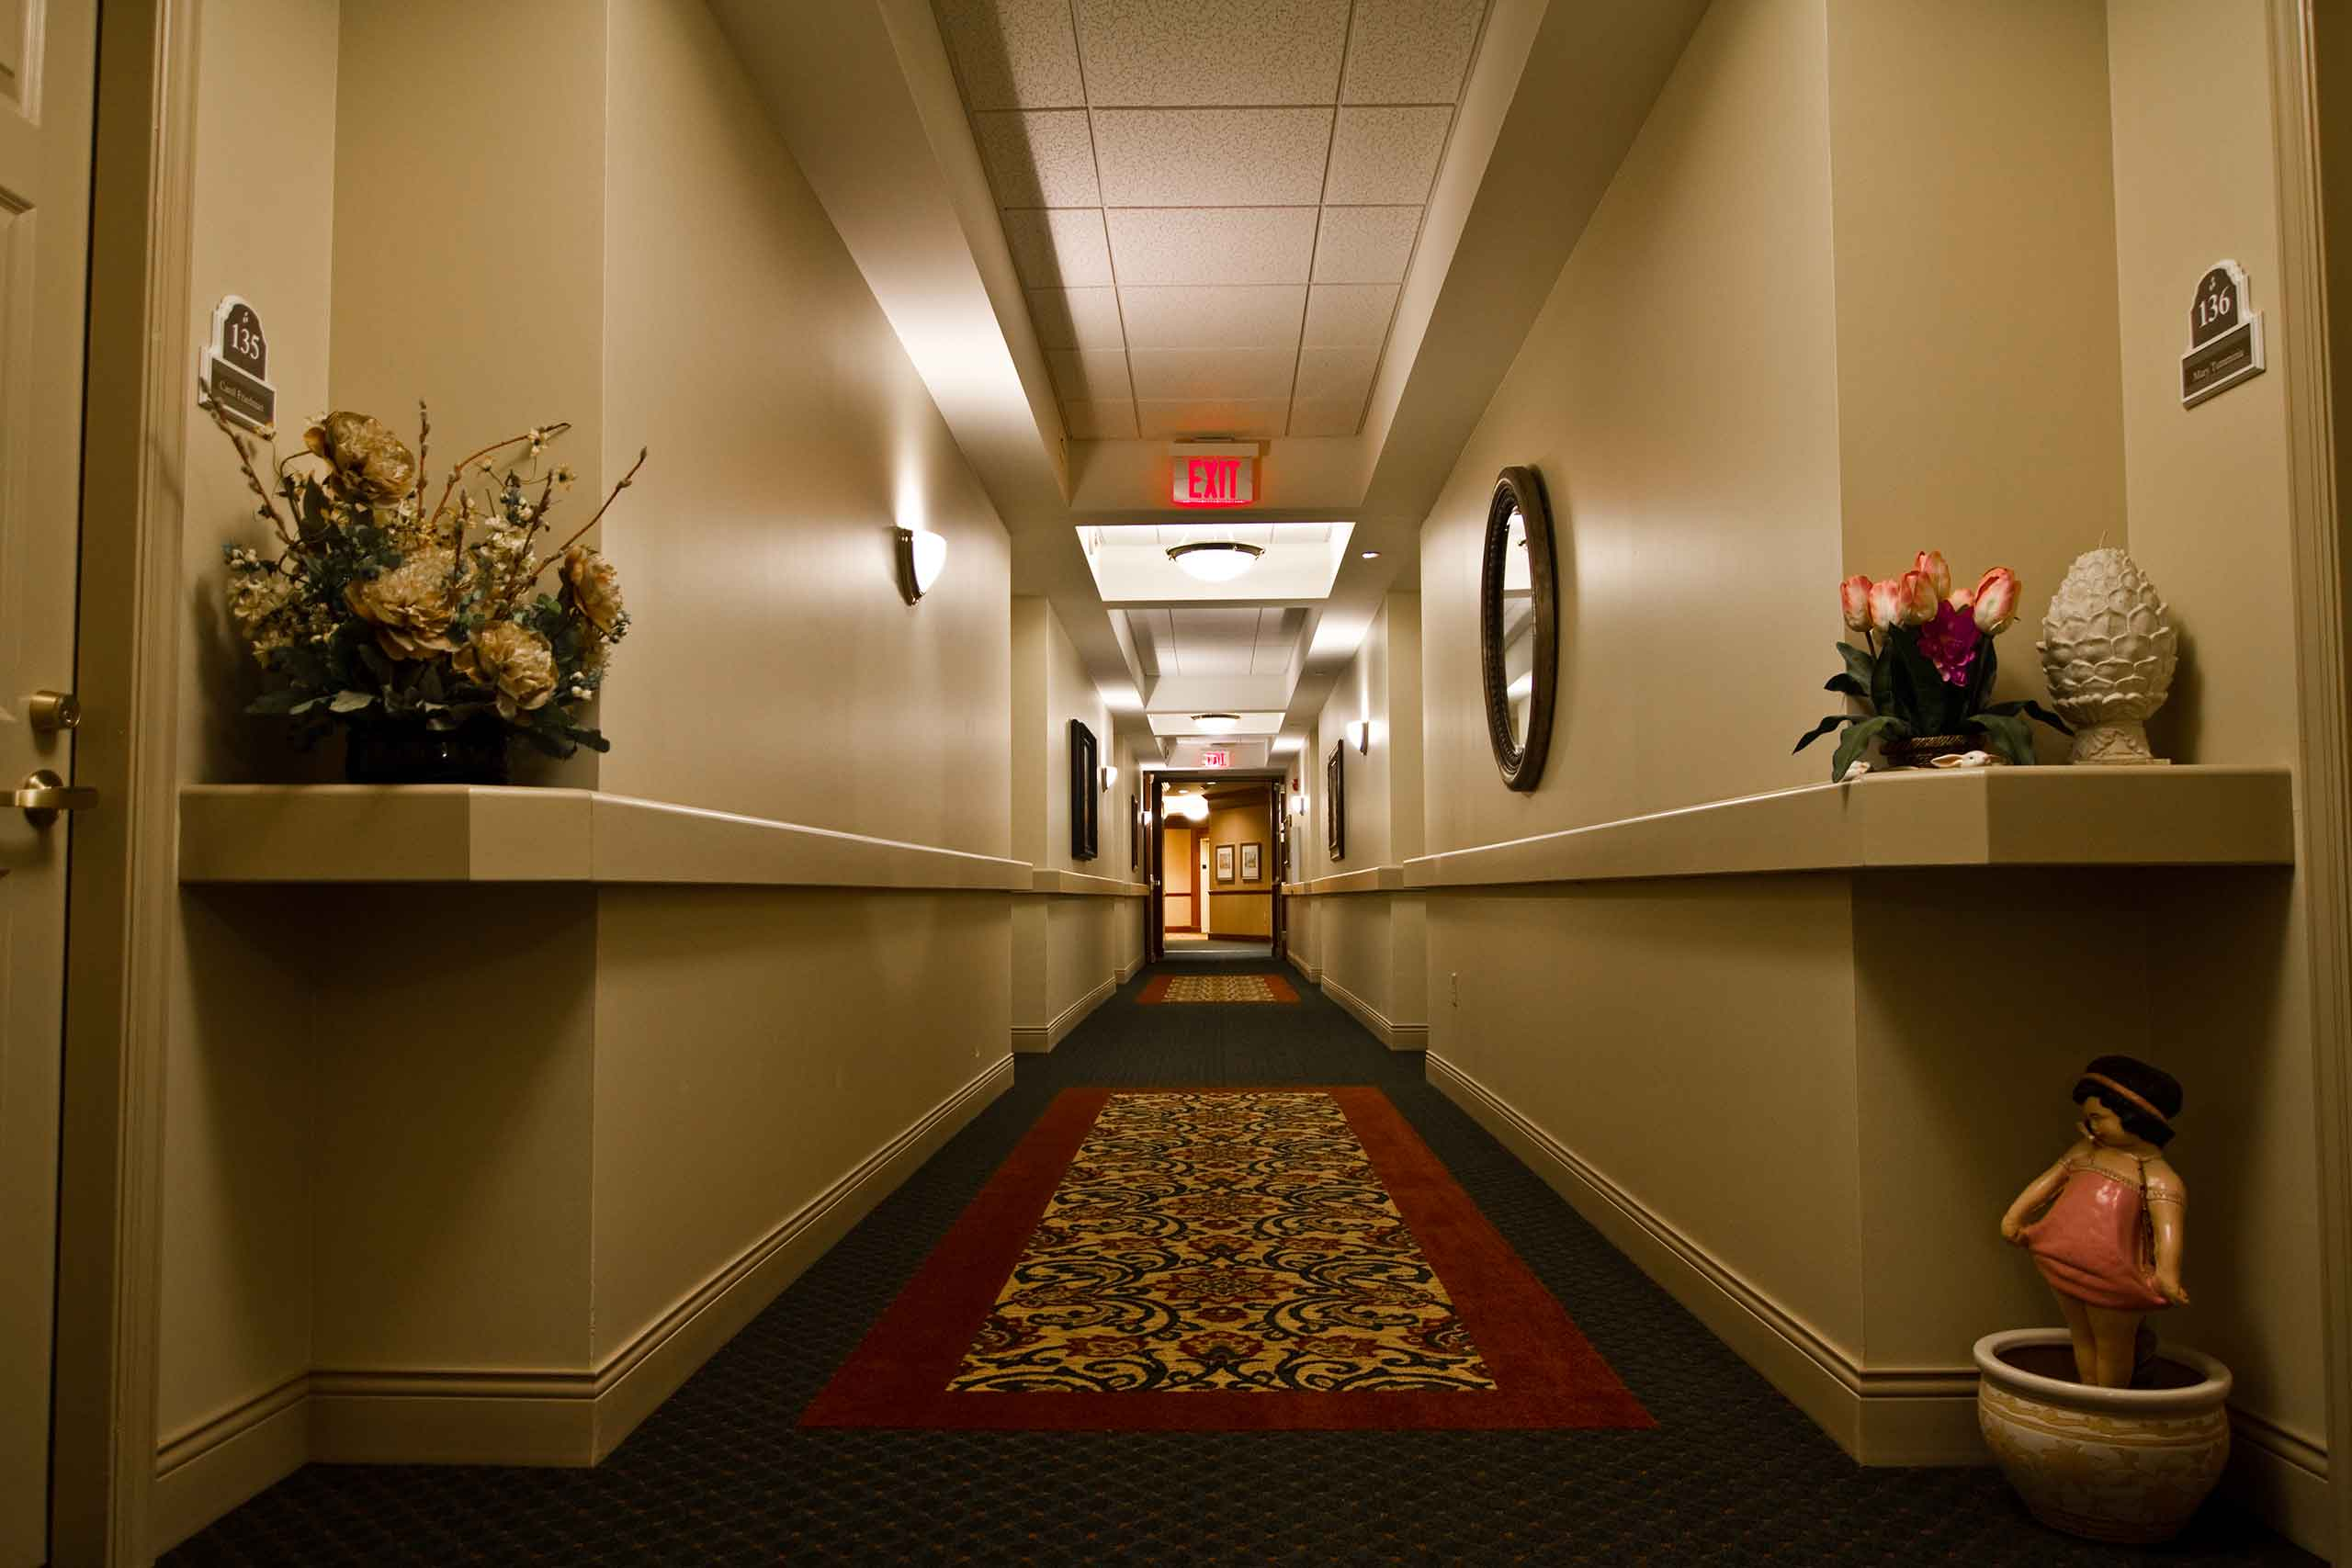 The-Hallmark-of-Creve-Coeur-Hallway